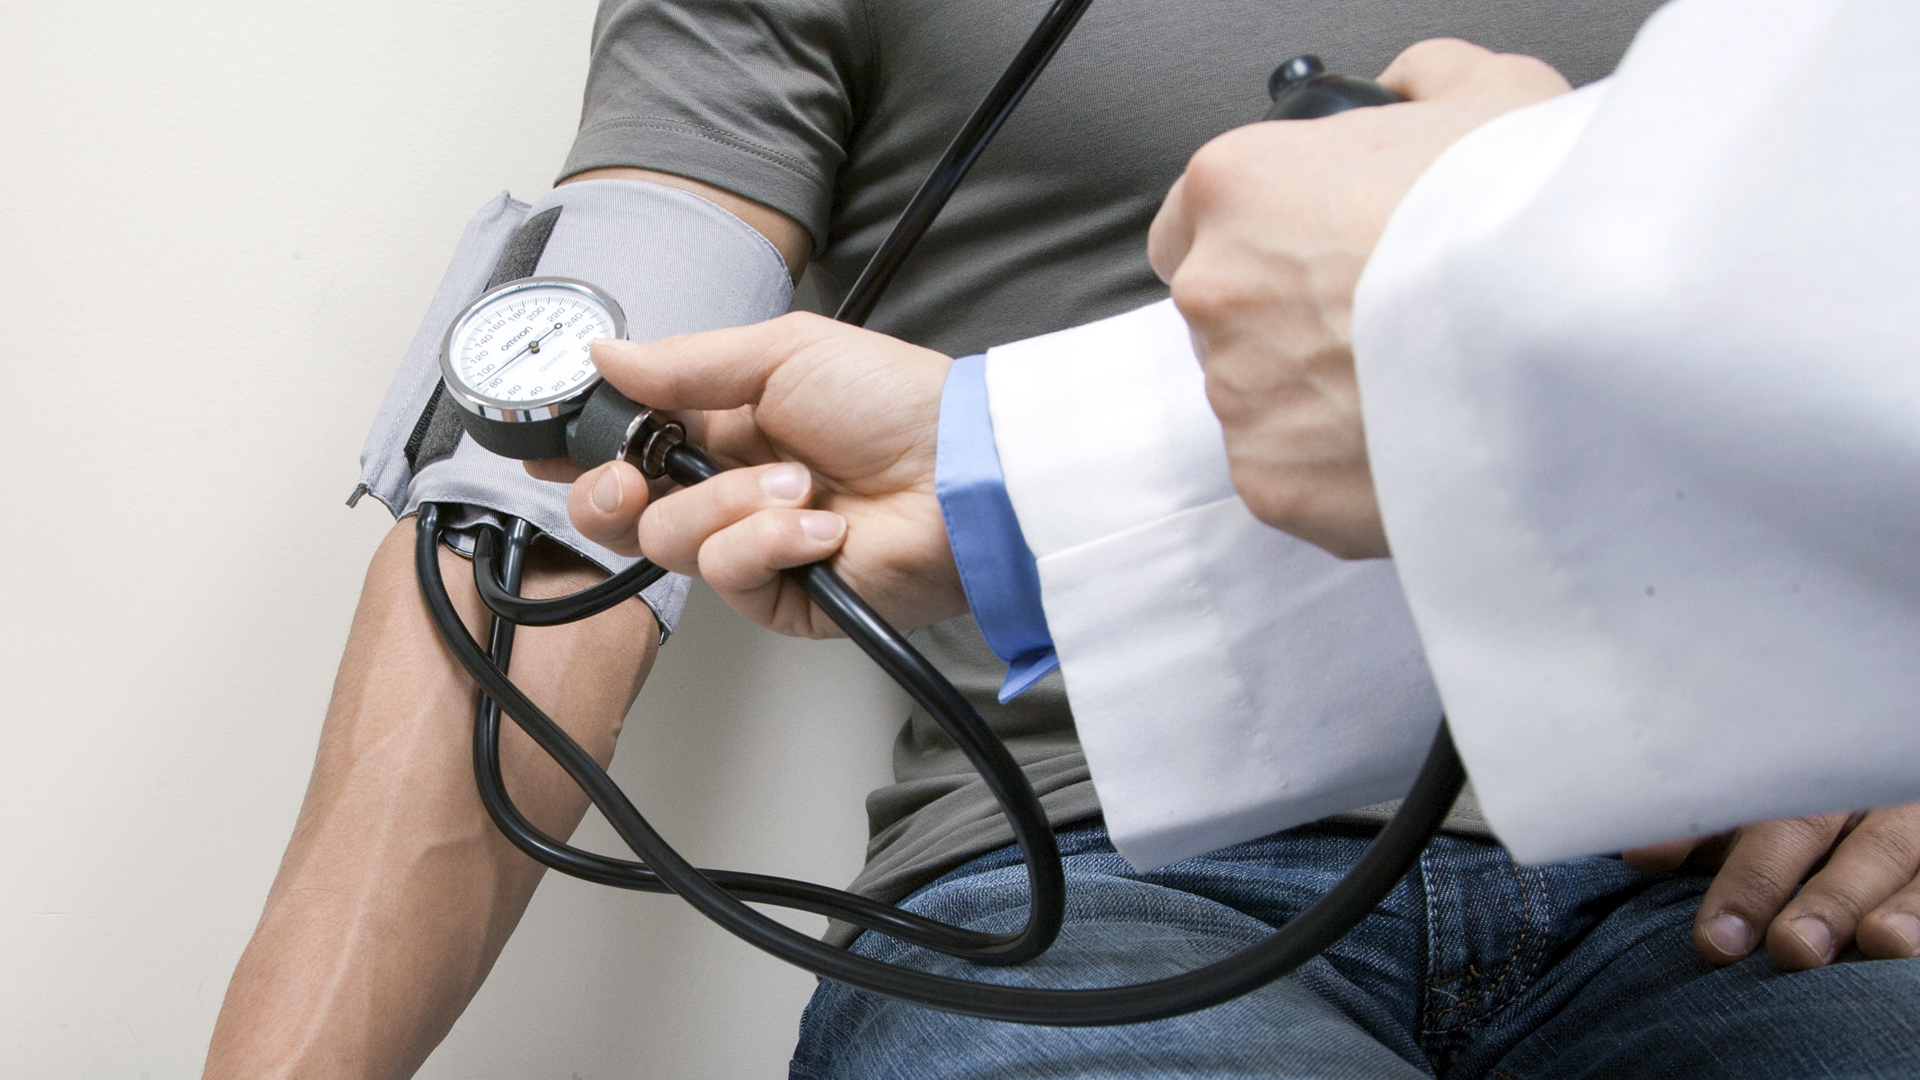 Why is Maintaining a Healthy Blood Pressure Important?